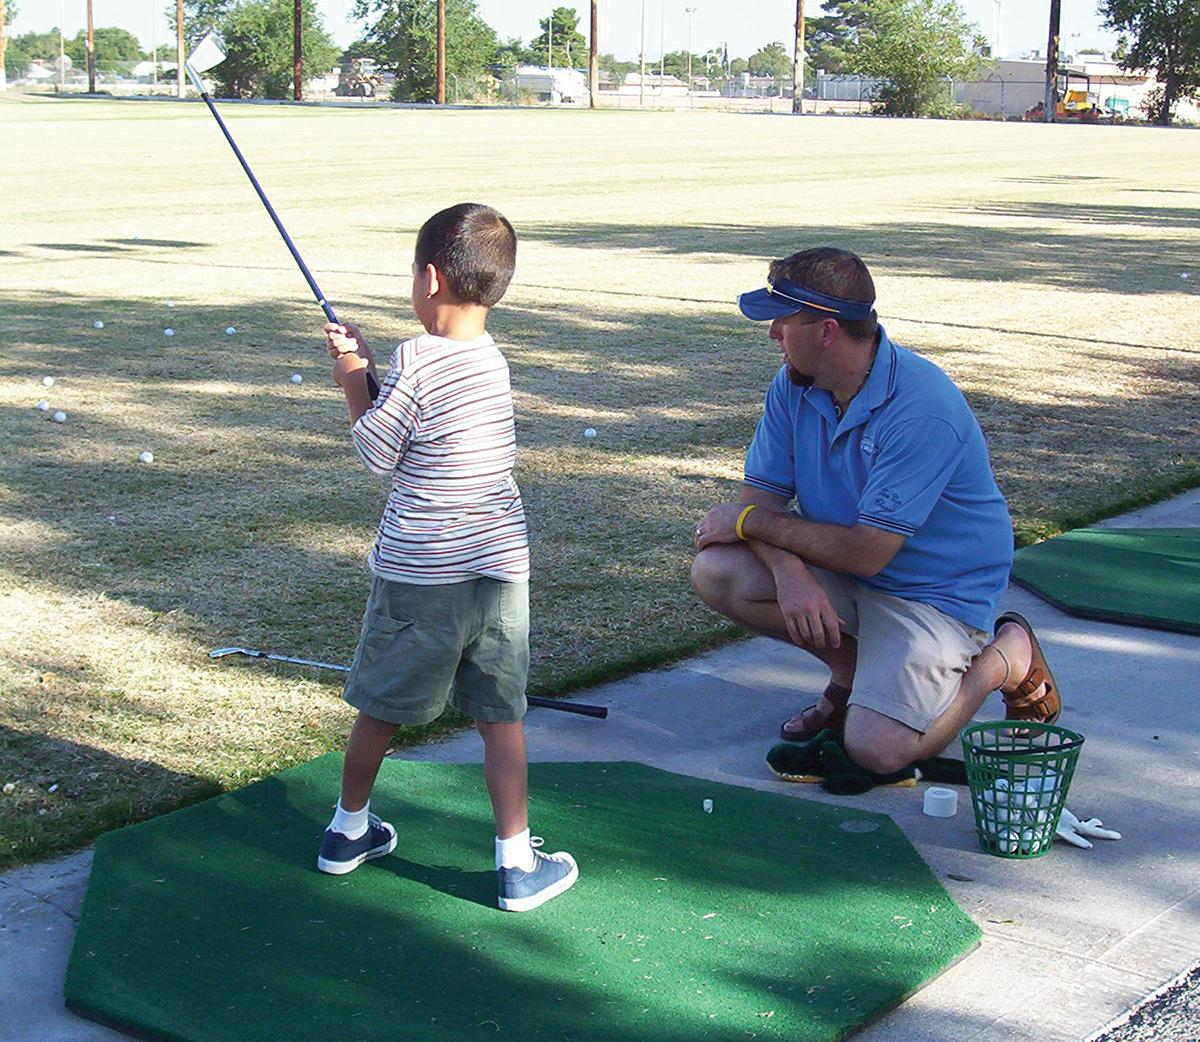 Hole-in-one fun: Sticks for Kids teaches golf to youth ages 6-17.